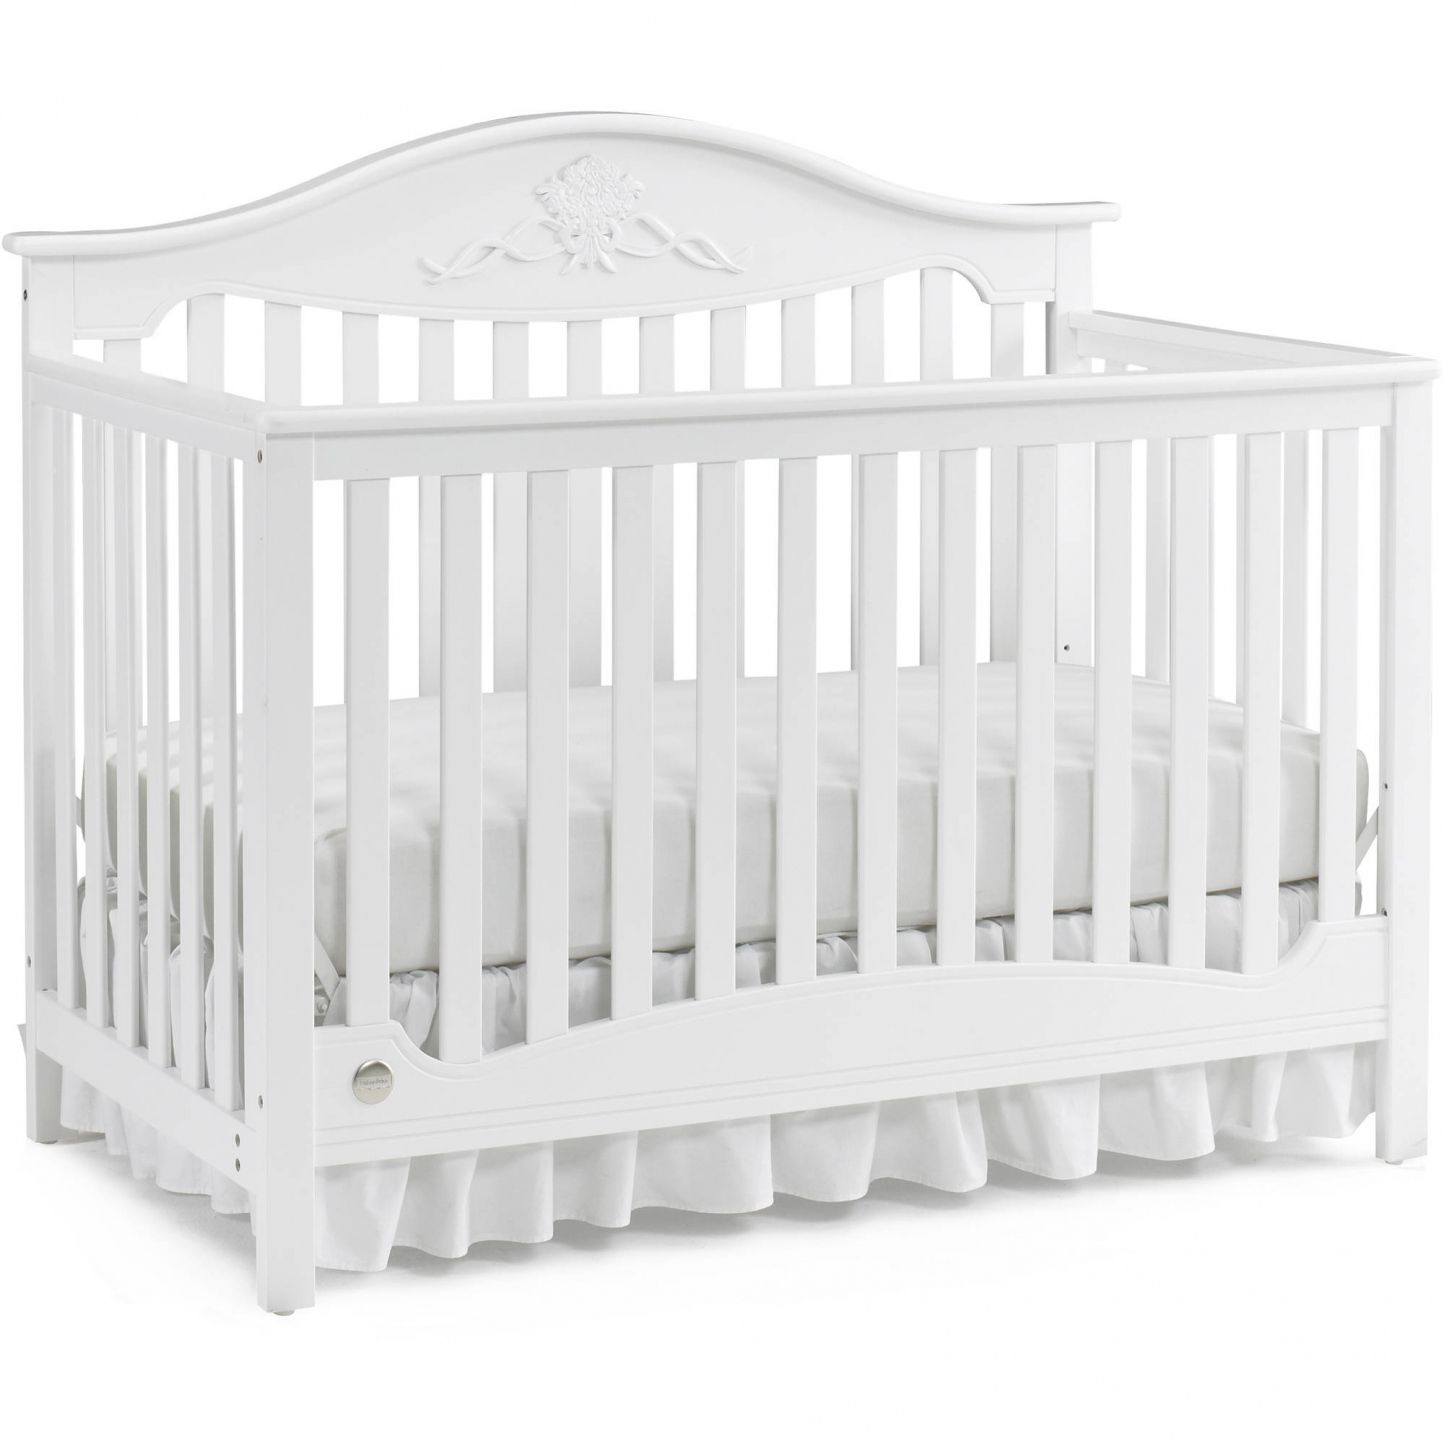 Low Price Baby Furniture - What is the Best Interior Paint Check ...